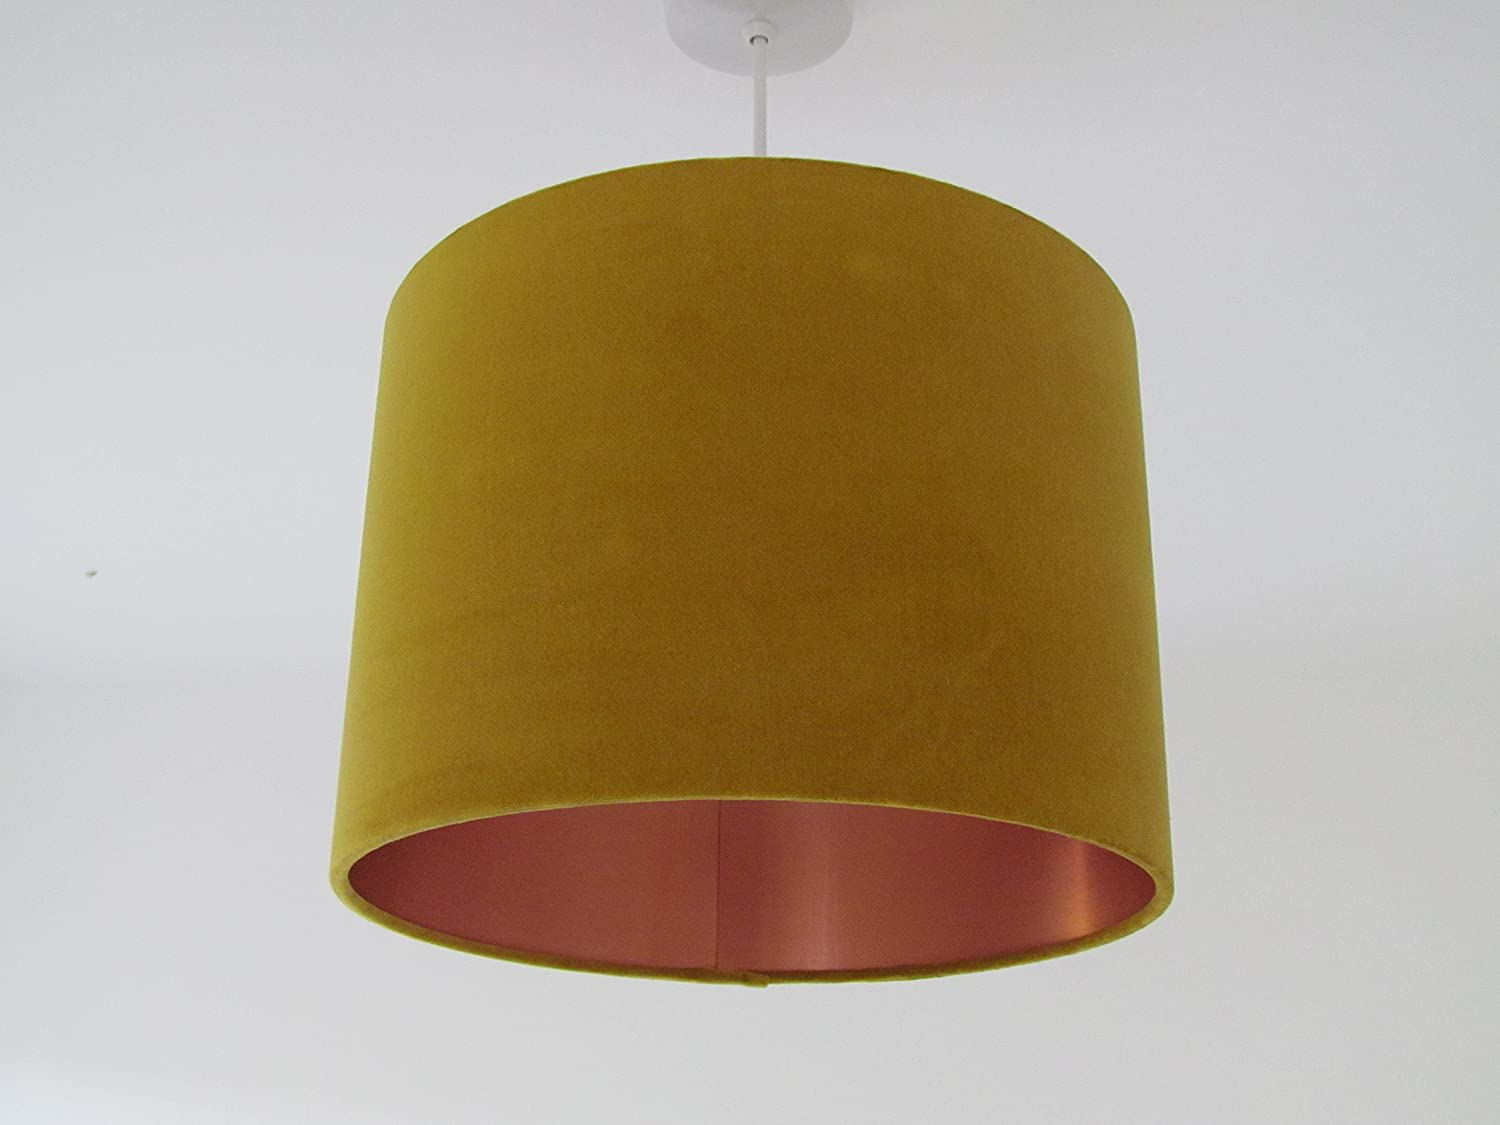 16ad023ab01 Mustard Yellow Gold Velvet with Brushed Copper Metallic Lined Lampshade  Lightshade All Sizes  Amazon.co.uk  Handmade